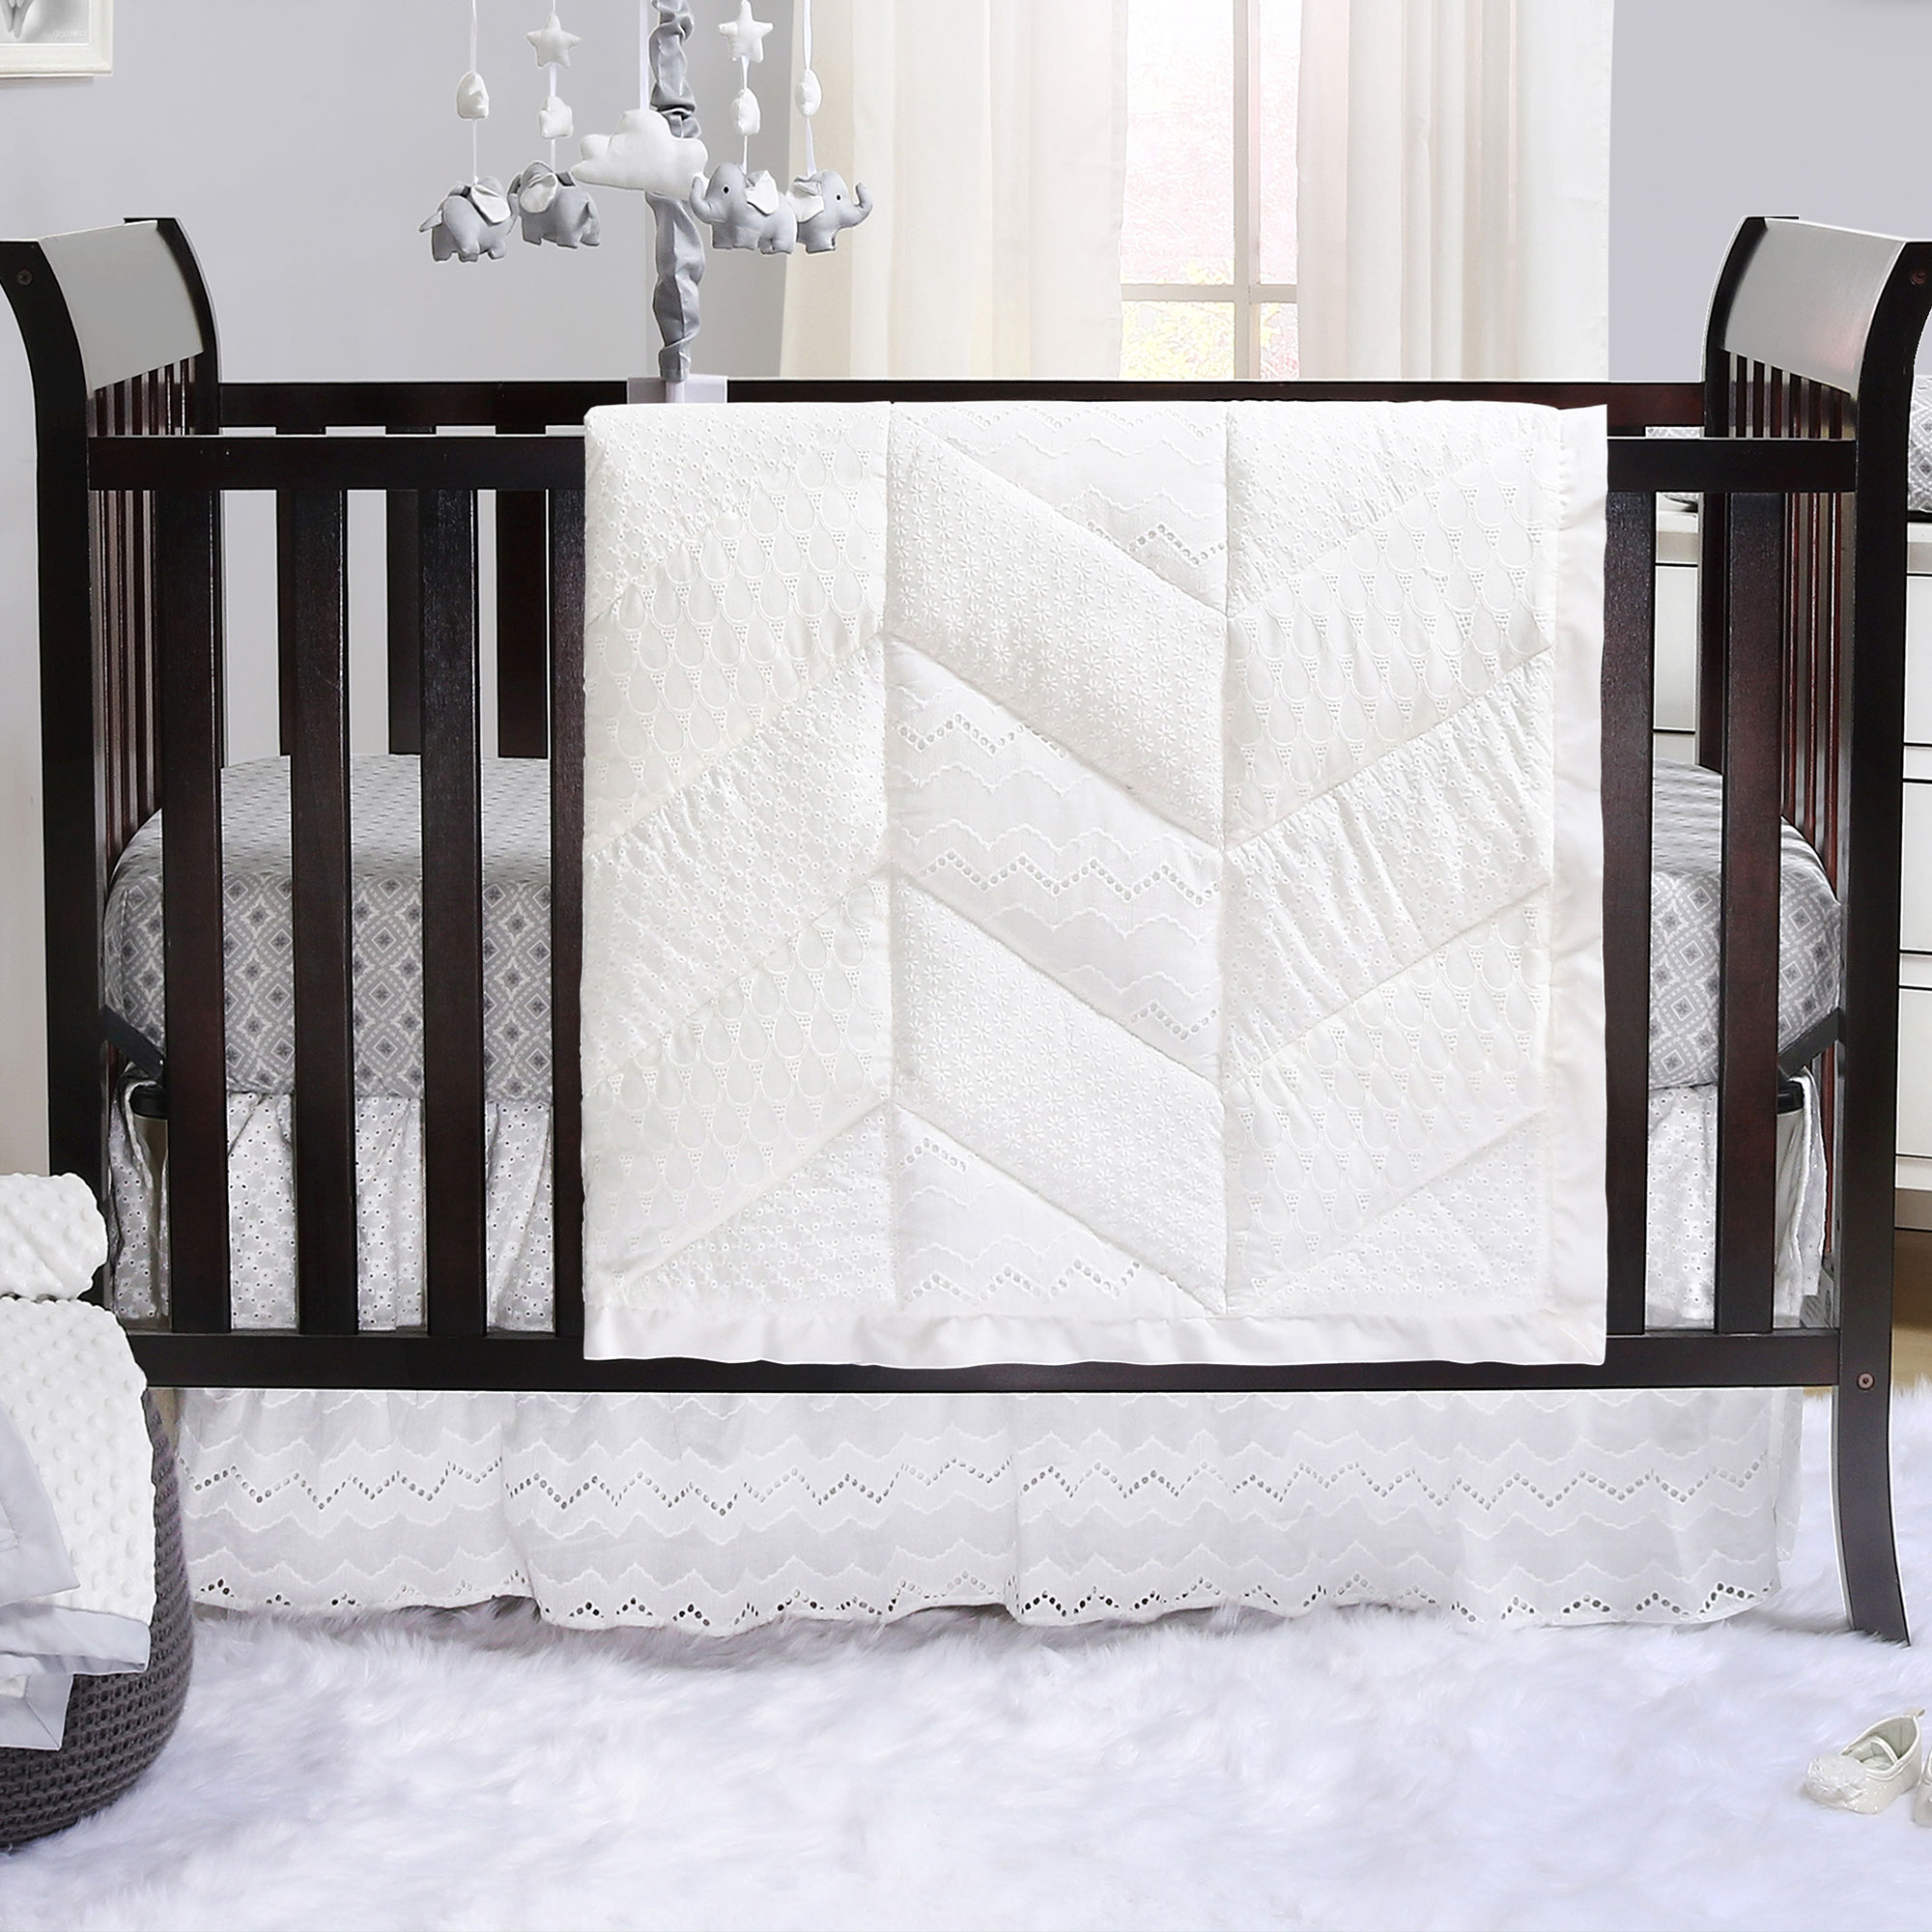 Taylor White Eyelet 3 Piece Baby Crib Bedding Set by The Peanut Shell by The Peanut Shell